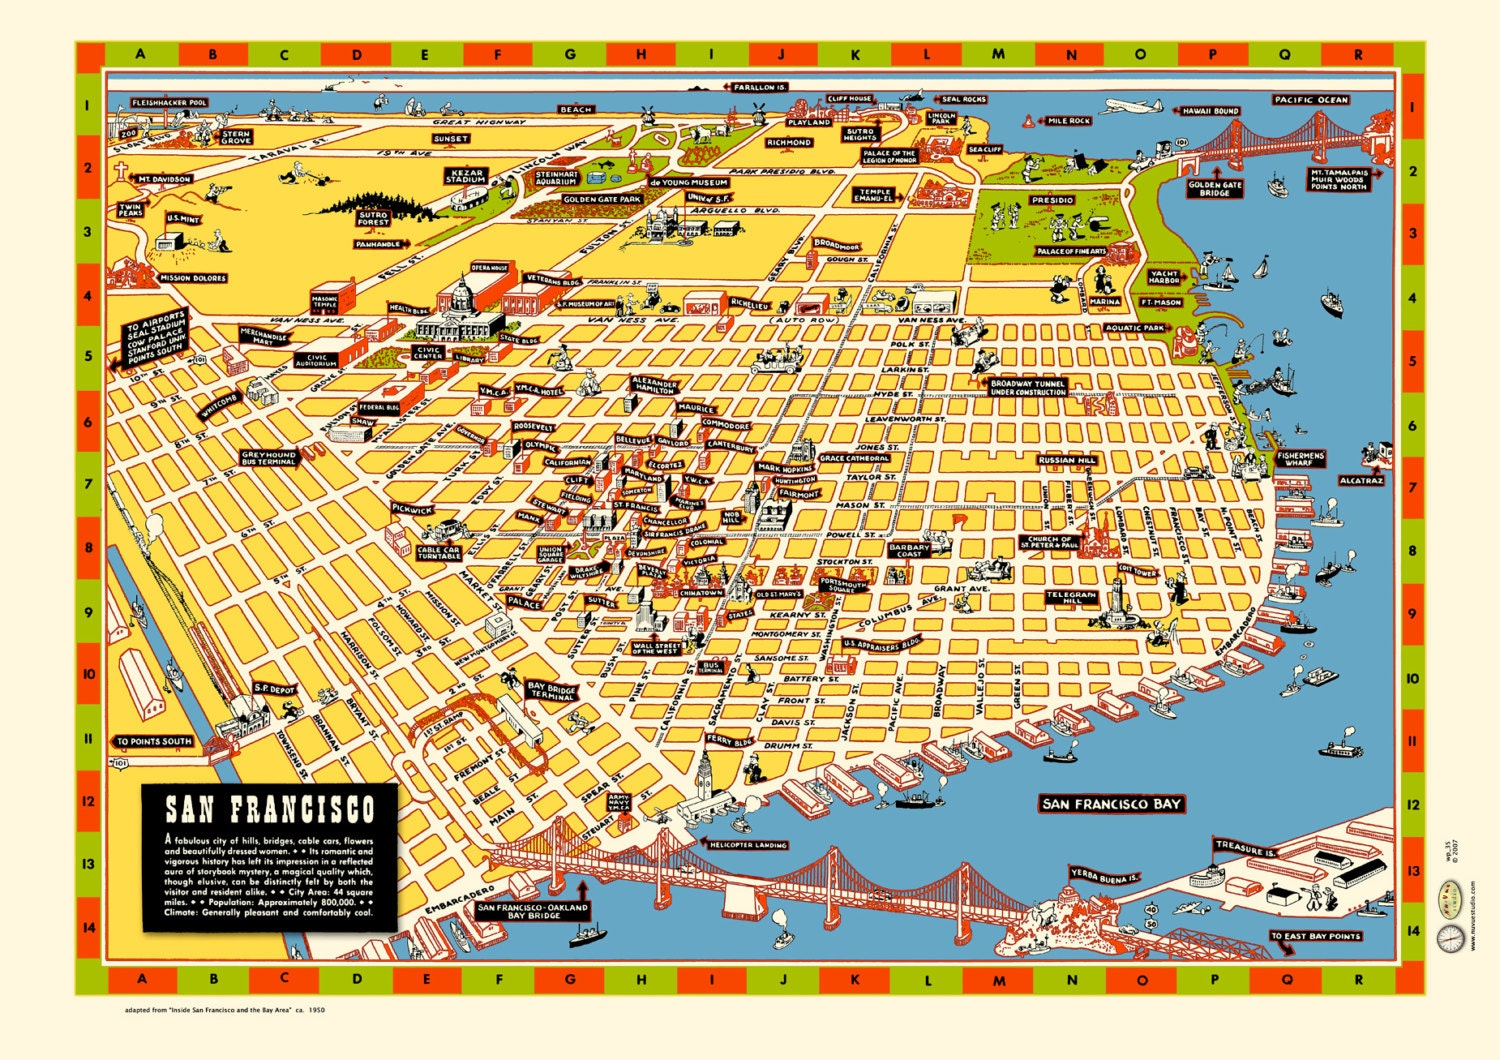 san francisco illustr carte des ann es 1940 affiche vintage. Black Bedroom Furniture Sets. Home Design Ideas